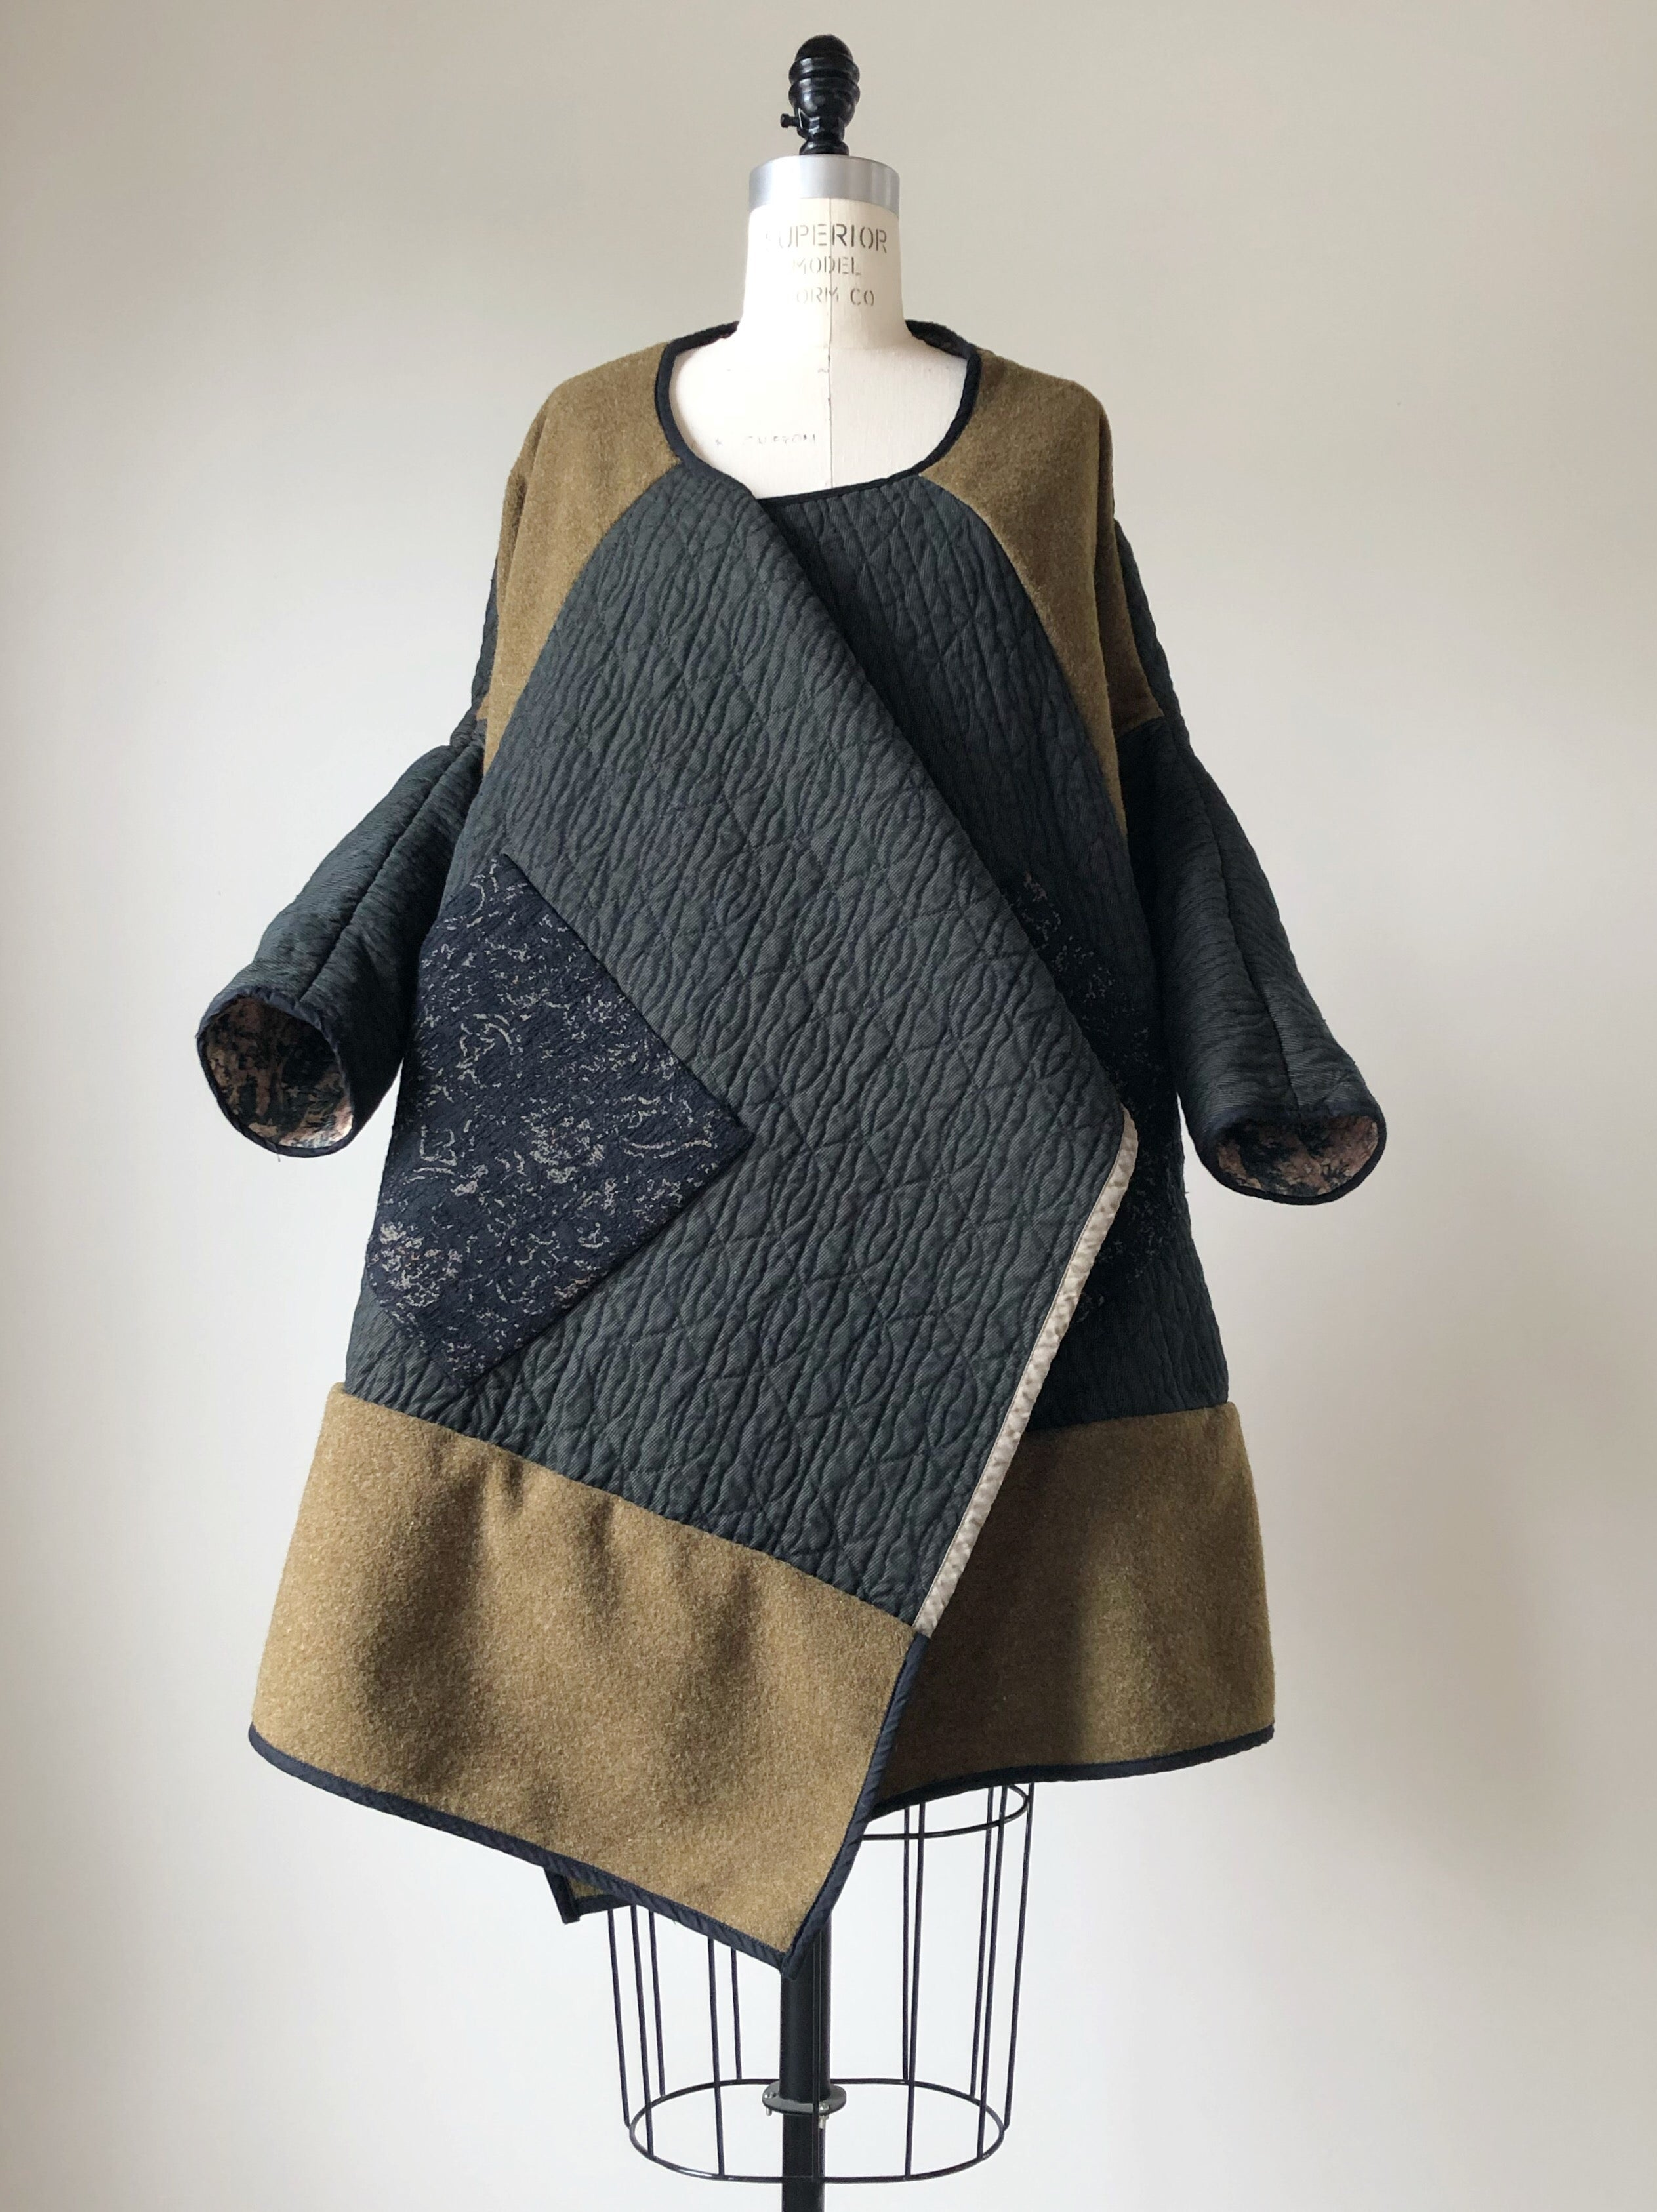 moving blanket samurai cocoon jacket